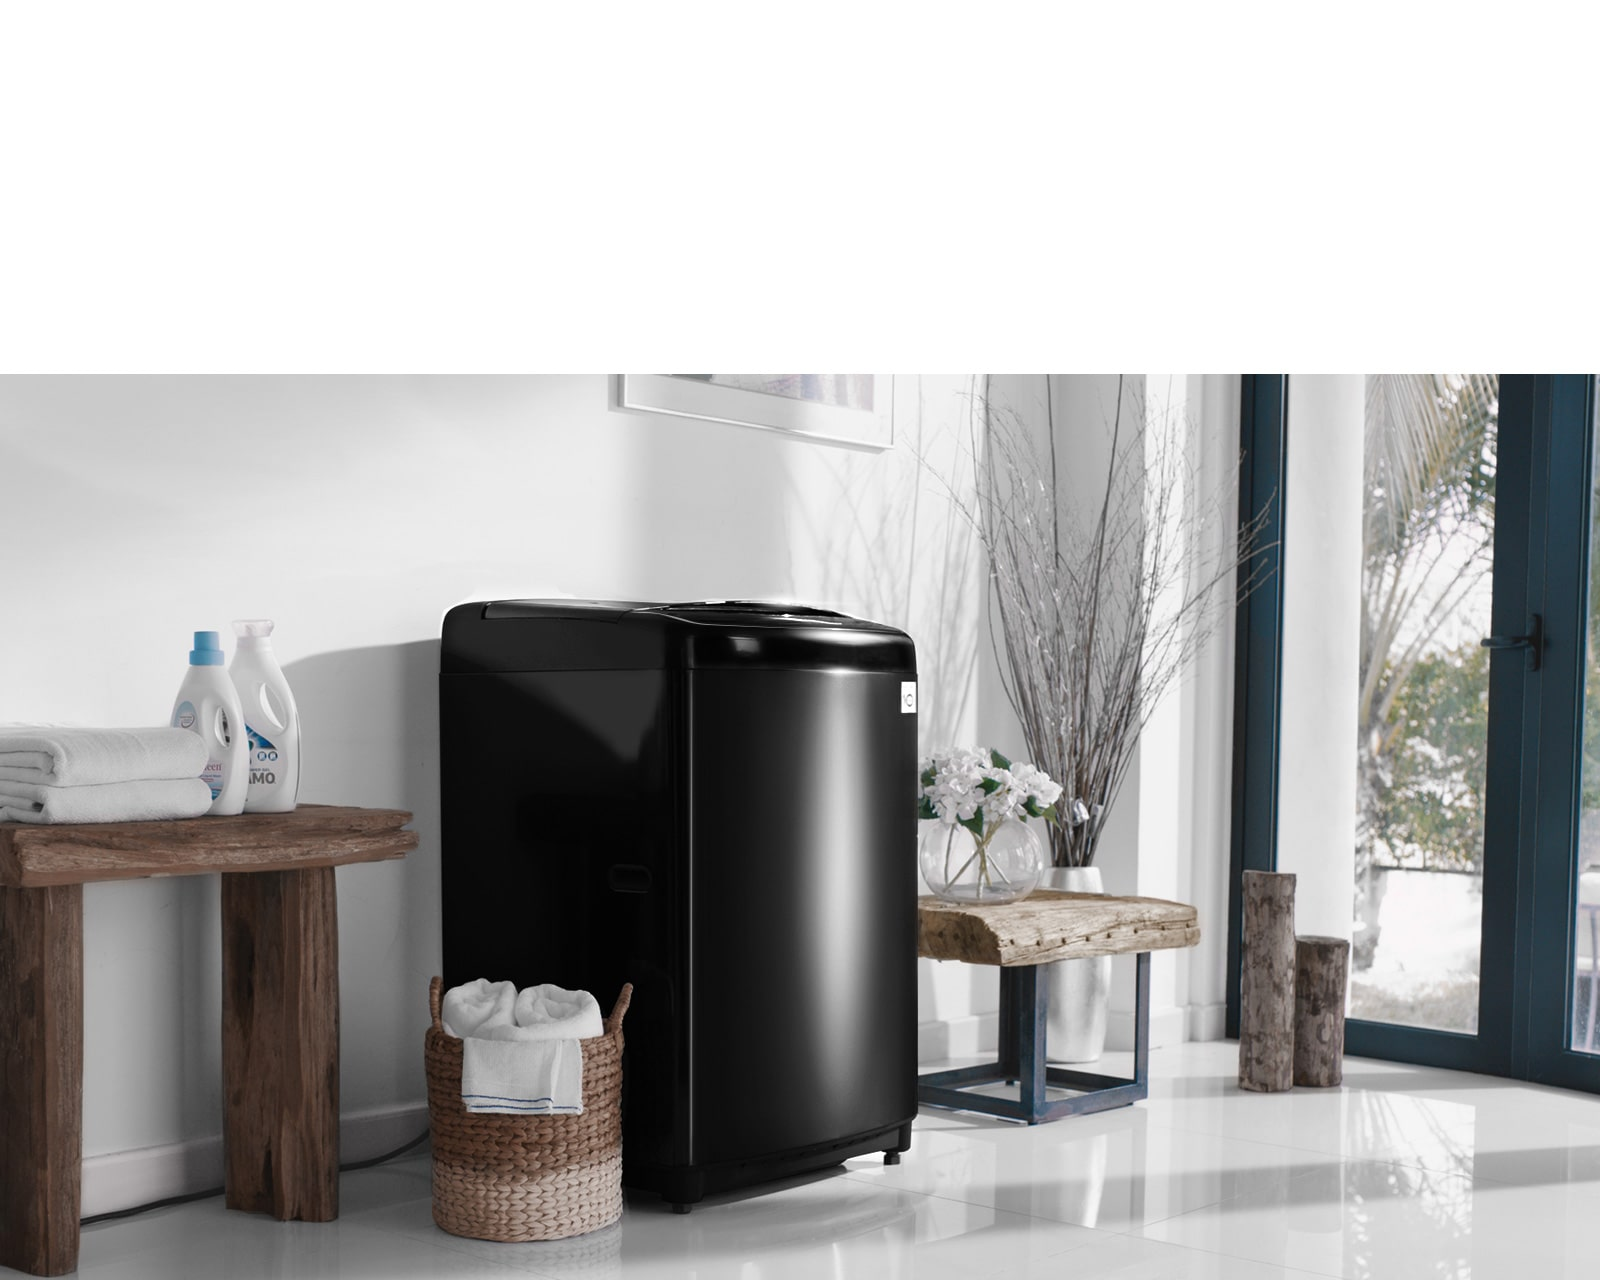 LG Premium Design Top Loading Washing Machine